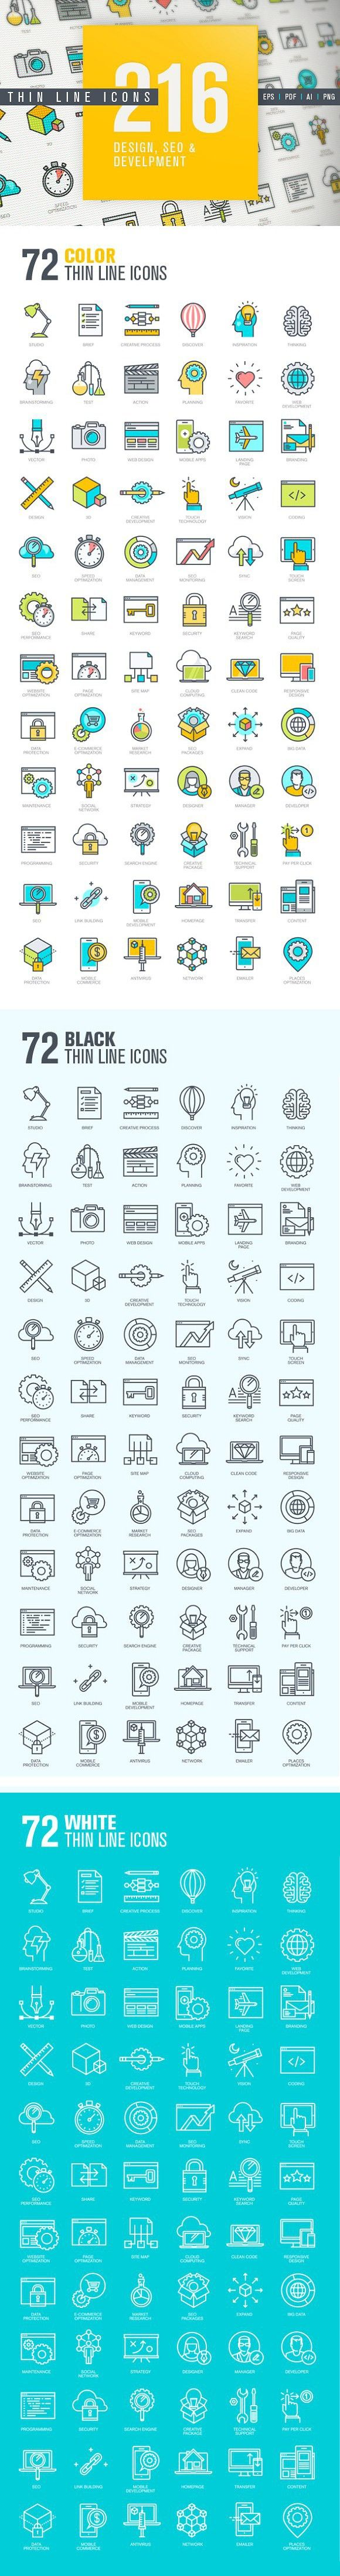 Thin Line Design & Development Icons. Business Infographic. $25.00